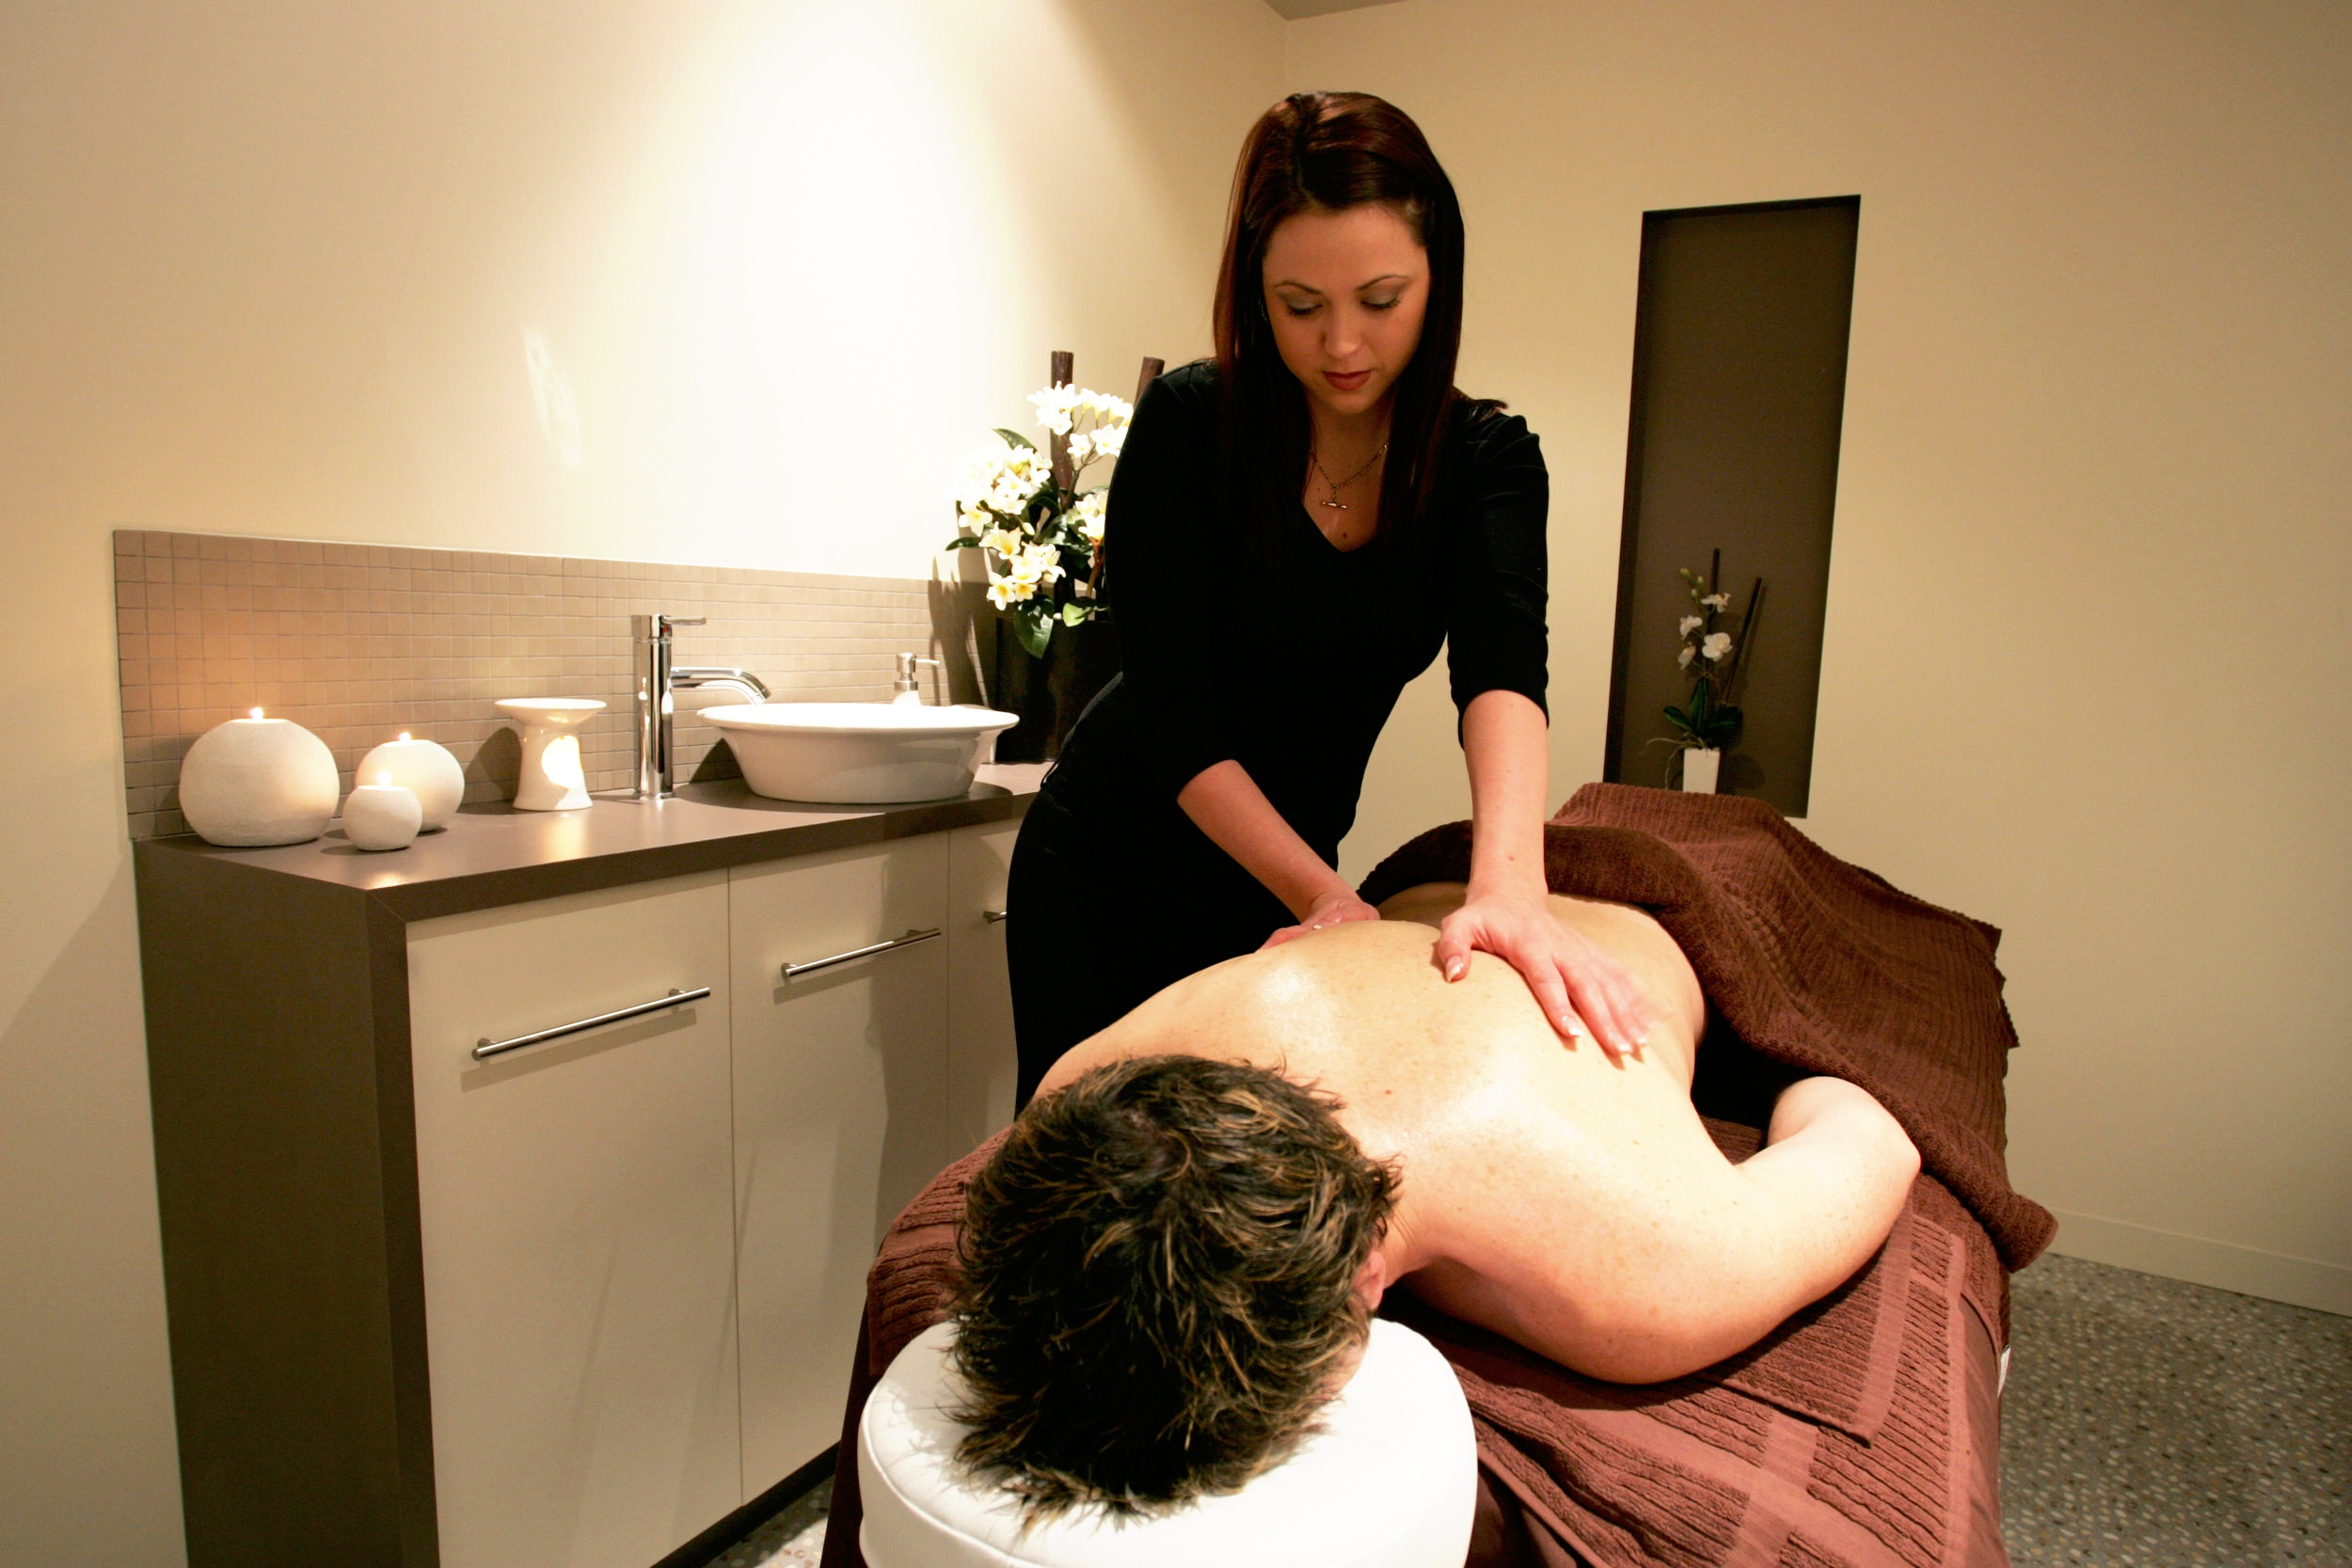 Monday - FridaySpring Special - Warm up with this winter with our relaxing 90min Winter Package:45 minute relaxation massage45 minute spa facial includes a scalp massage+ a free gift!for only - $140*Ask us about upgrading or extending your treatments!*Conditions apply. Available Mon-Fri onlySpecial offer not valid on Sundays or Public Holidays.Treatments not to be split or shared.Mention this promo at time of booking to ensure the special applies to you. Limited appointments available.